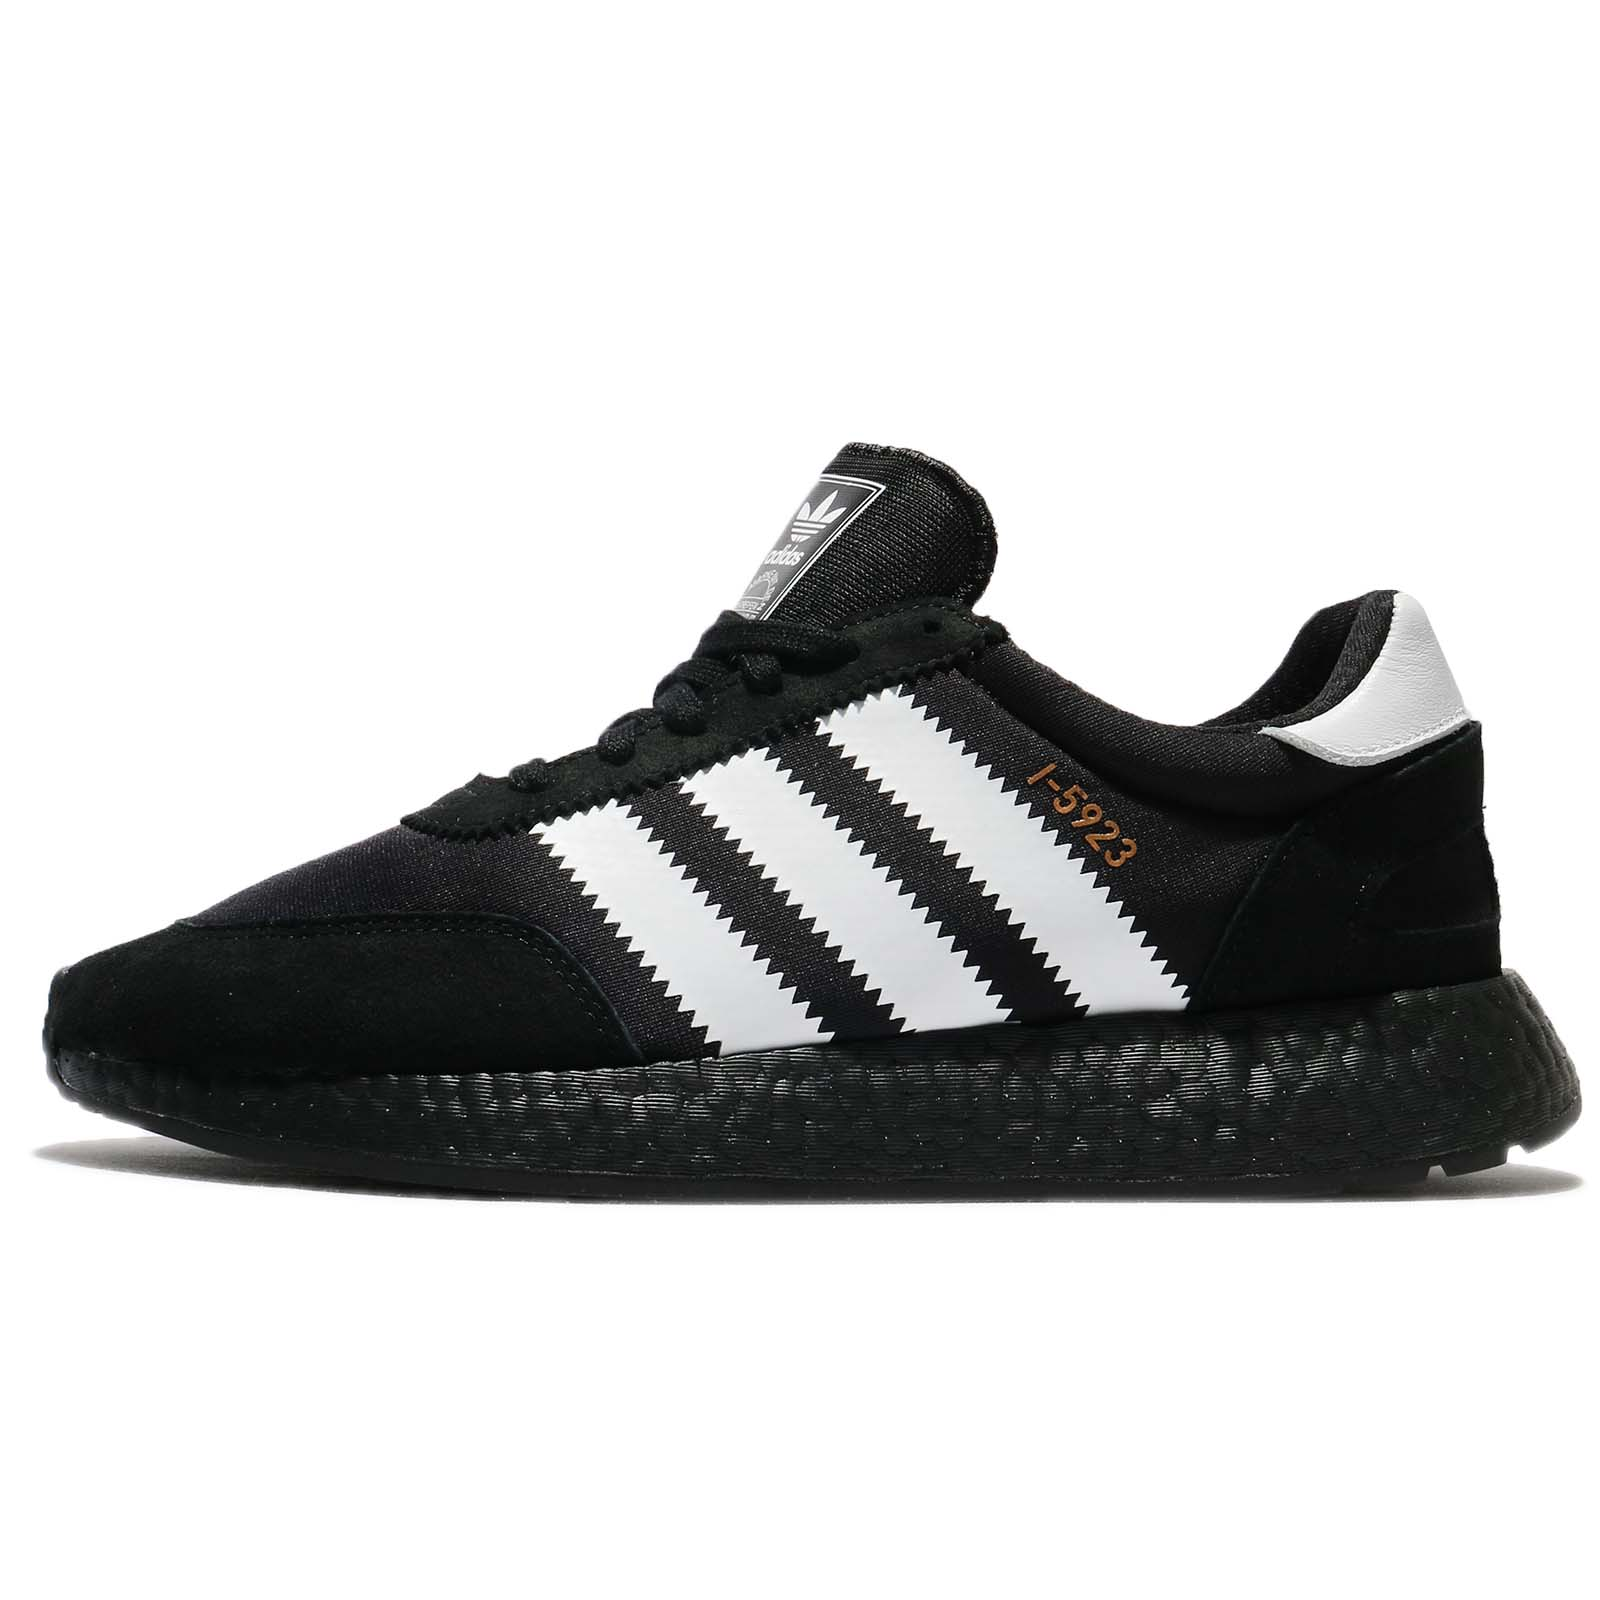 adidas Originals I-5923 Boost Black White Men Running Shoes Sneakers CQ2490